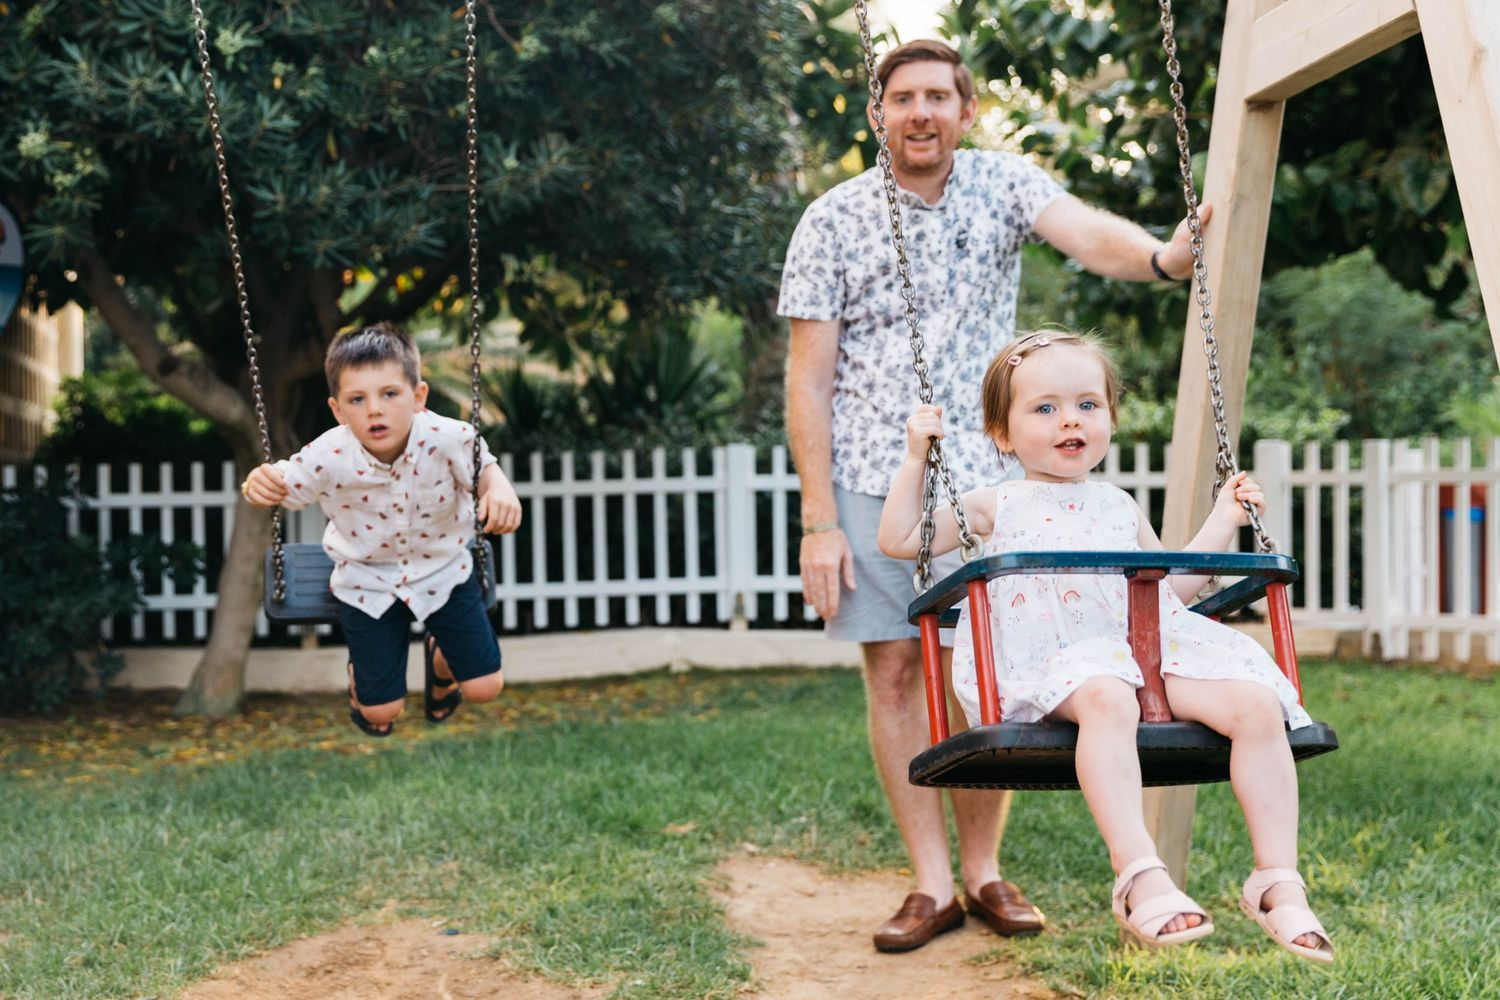 dad with two small kids on swings at playground